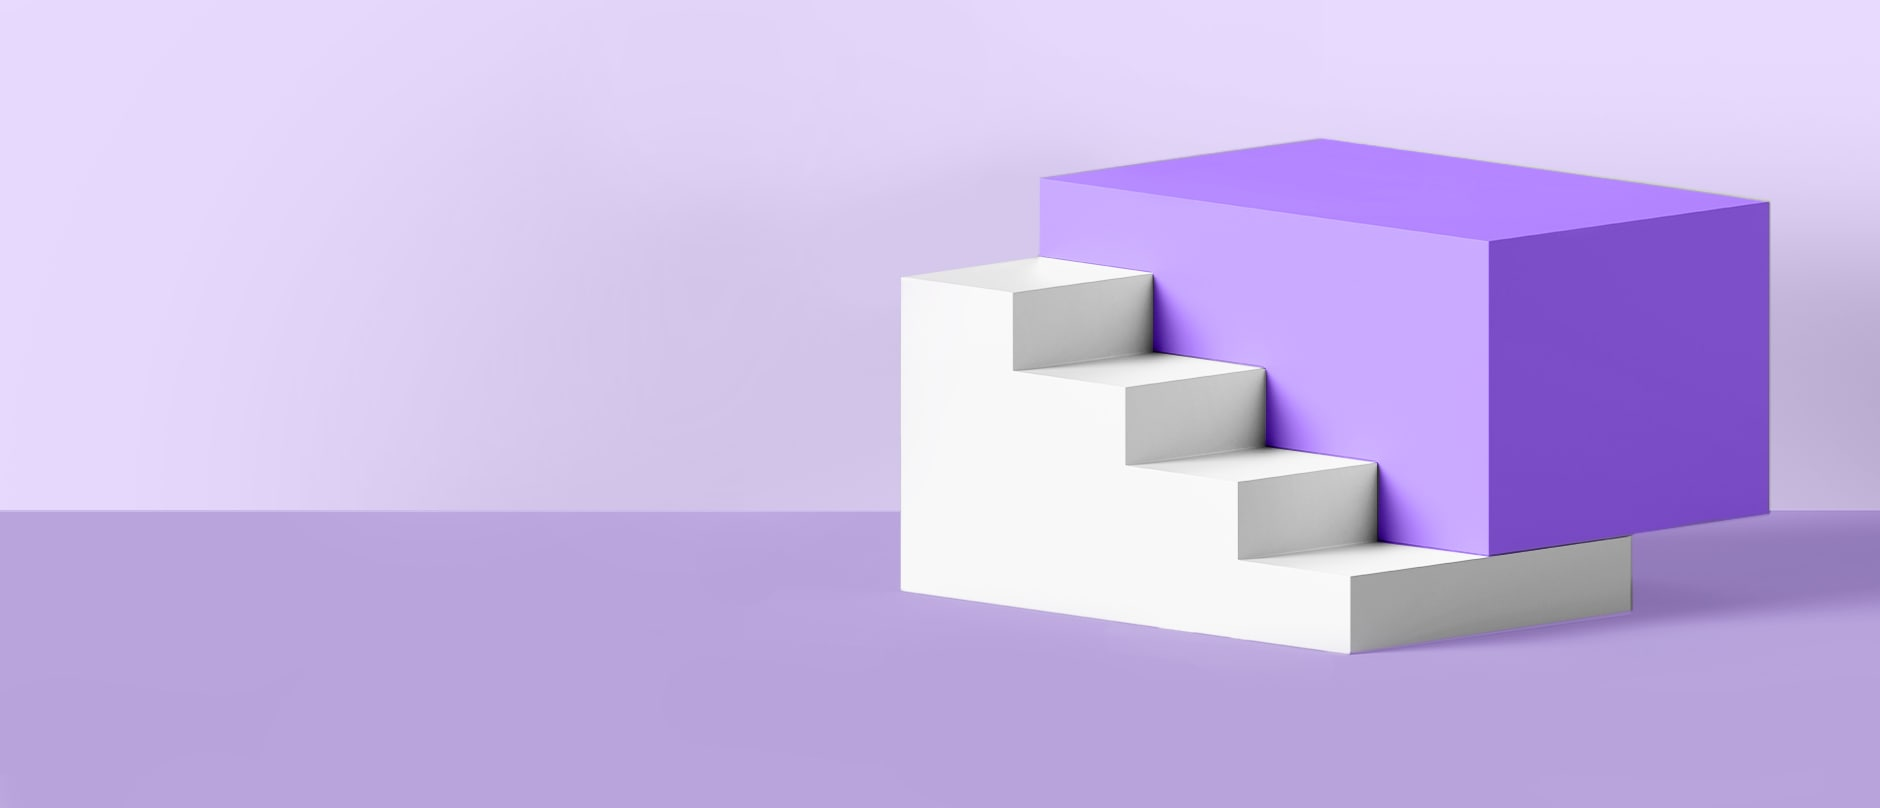 purple background behind a purple block with white stairs in front